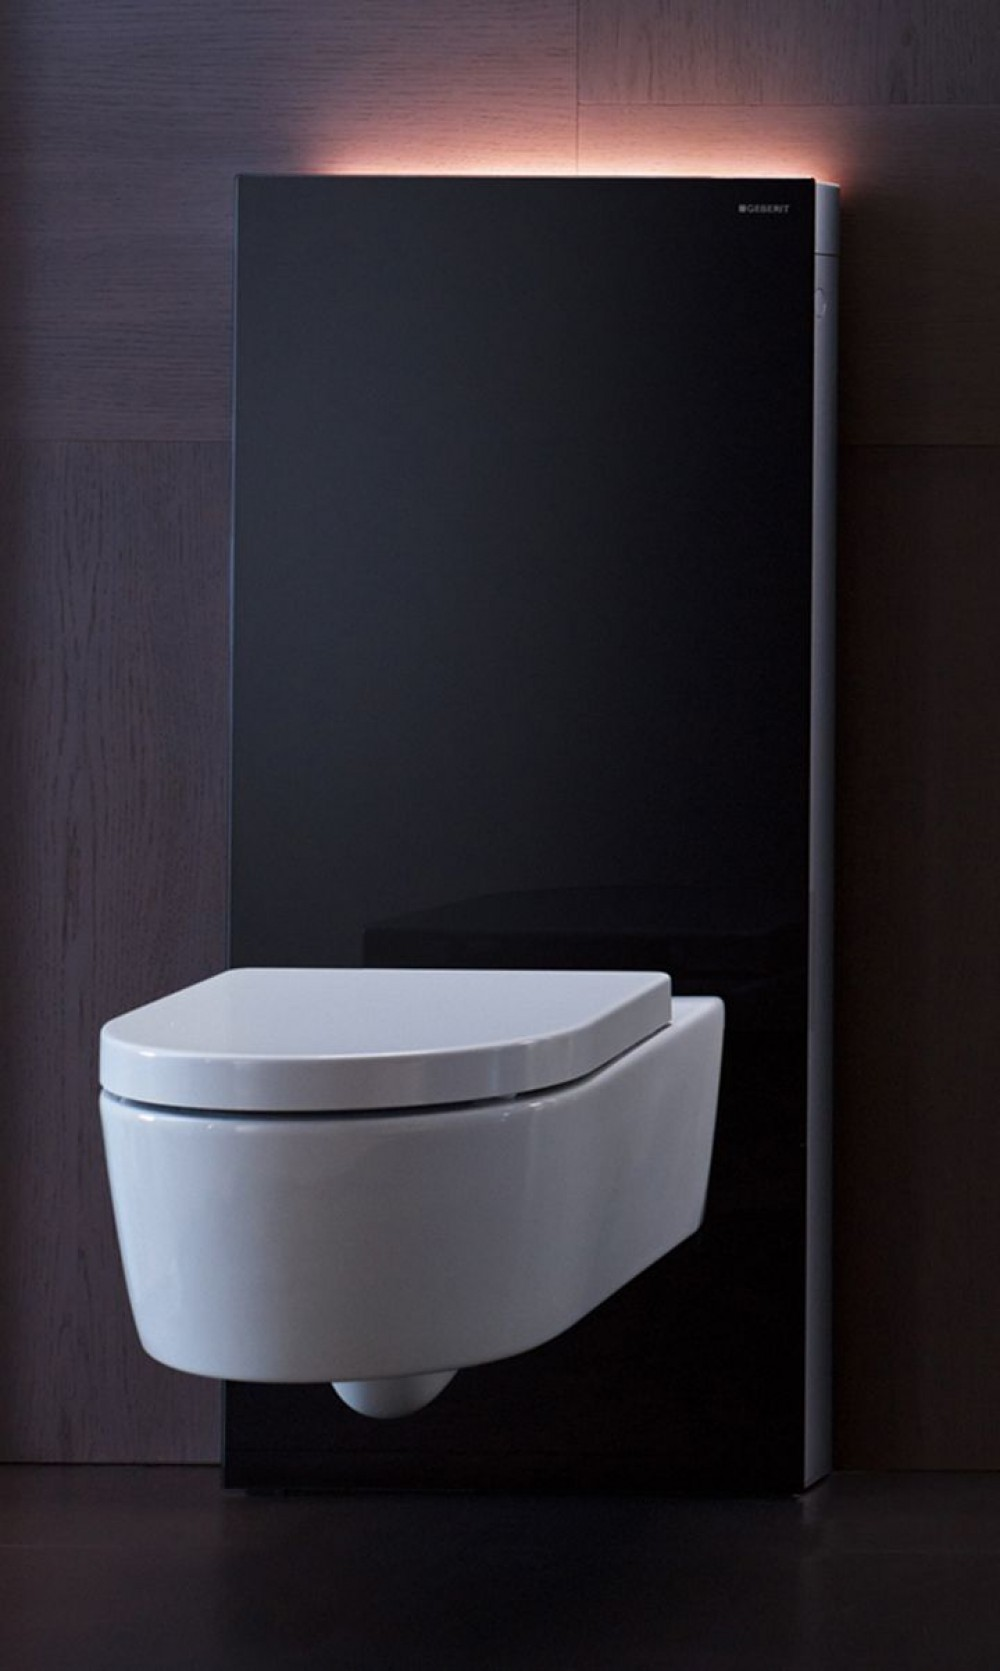 Geberit Wc Geberit Monolith Plus Sanitary Module For Wall Mounted Toilet H 101 Cm Black 131222sj1